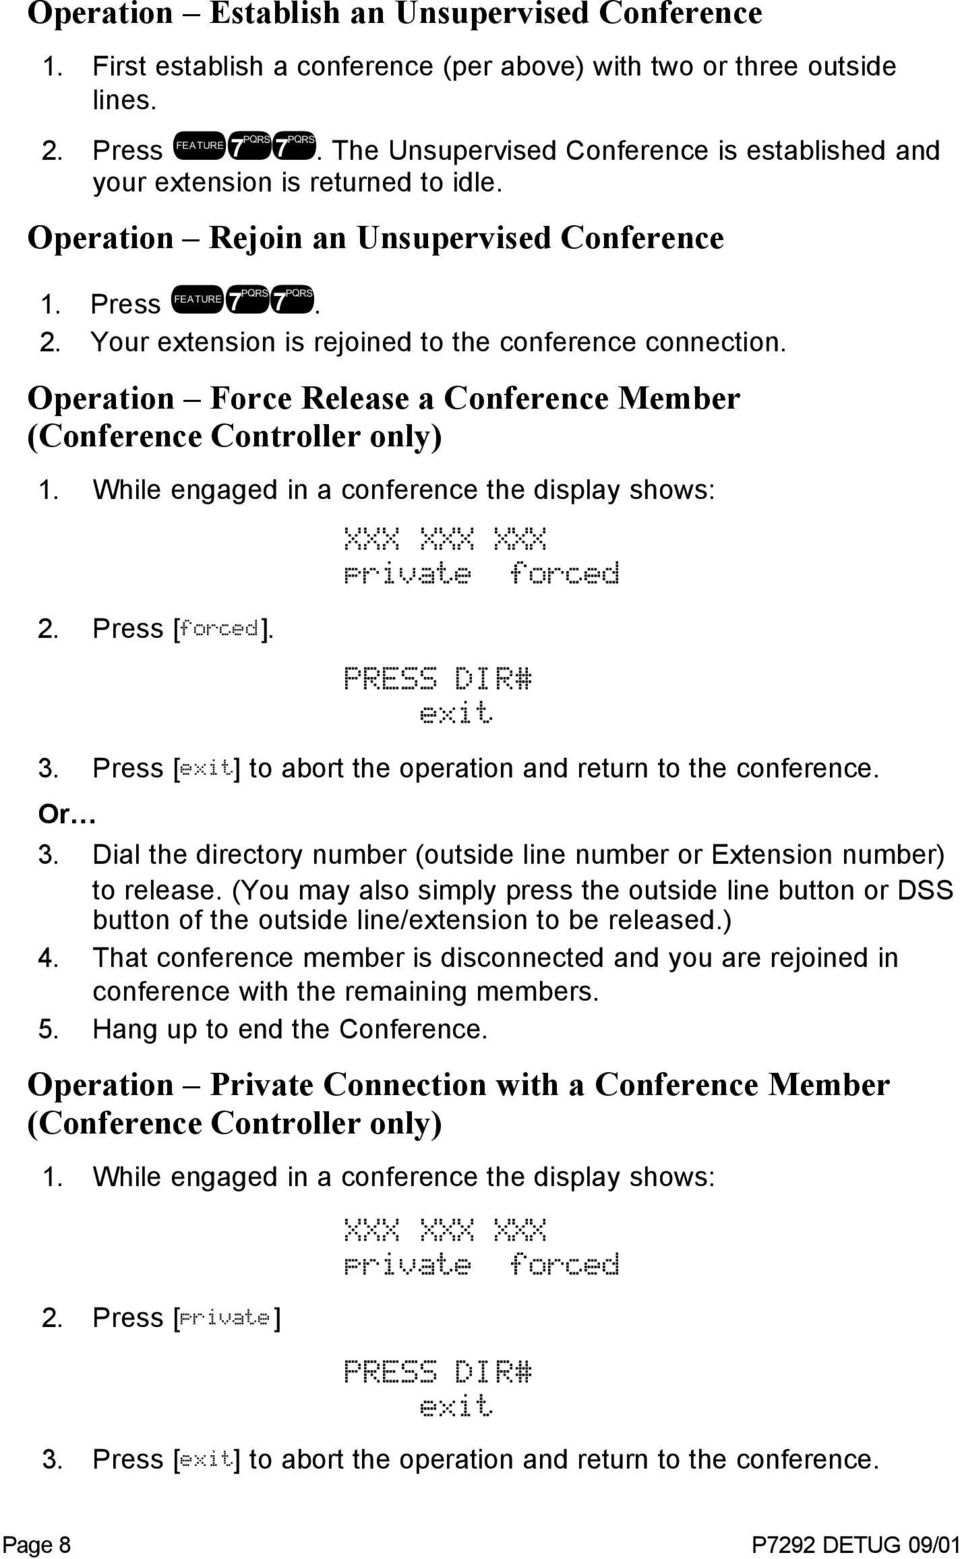 Force Release a Conference Member (Conference Controller only) 1. While engaged in a conference the display shows: XXX XXX XXX private forced 2. Press [forced]. PRESS DIR# exit 3.